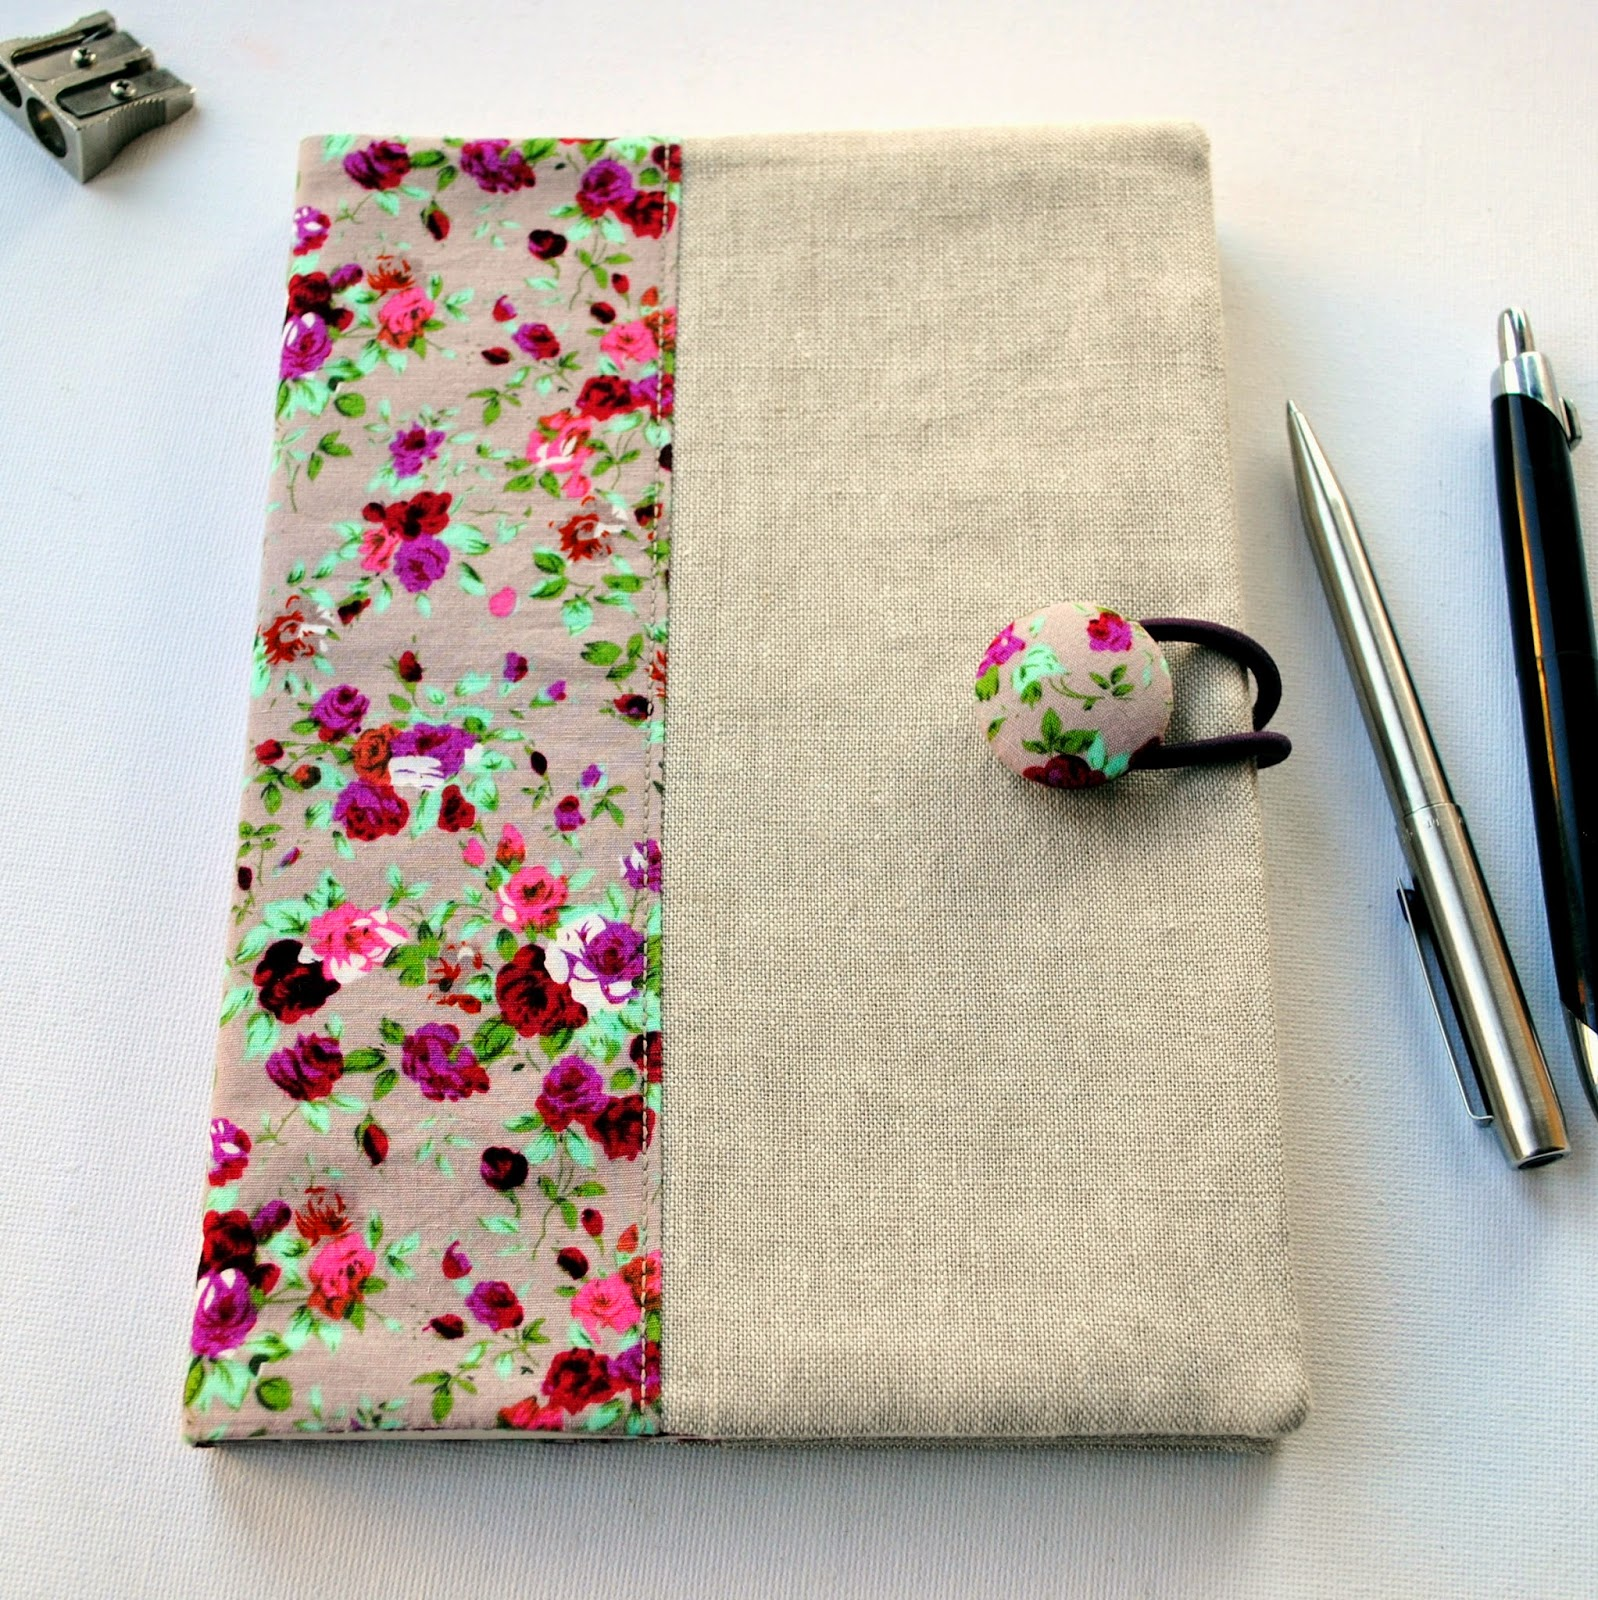 Fabric Cover For Book : Sewforsoul fabric notebook cover tutorial